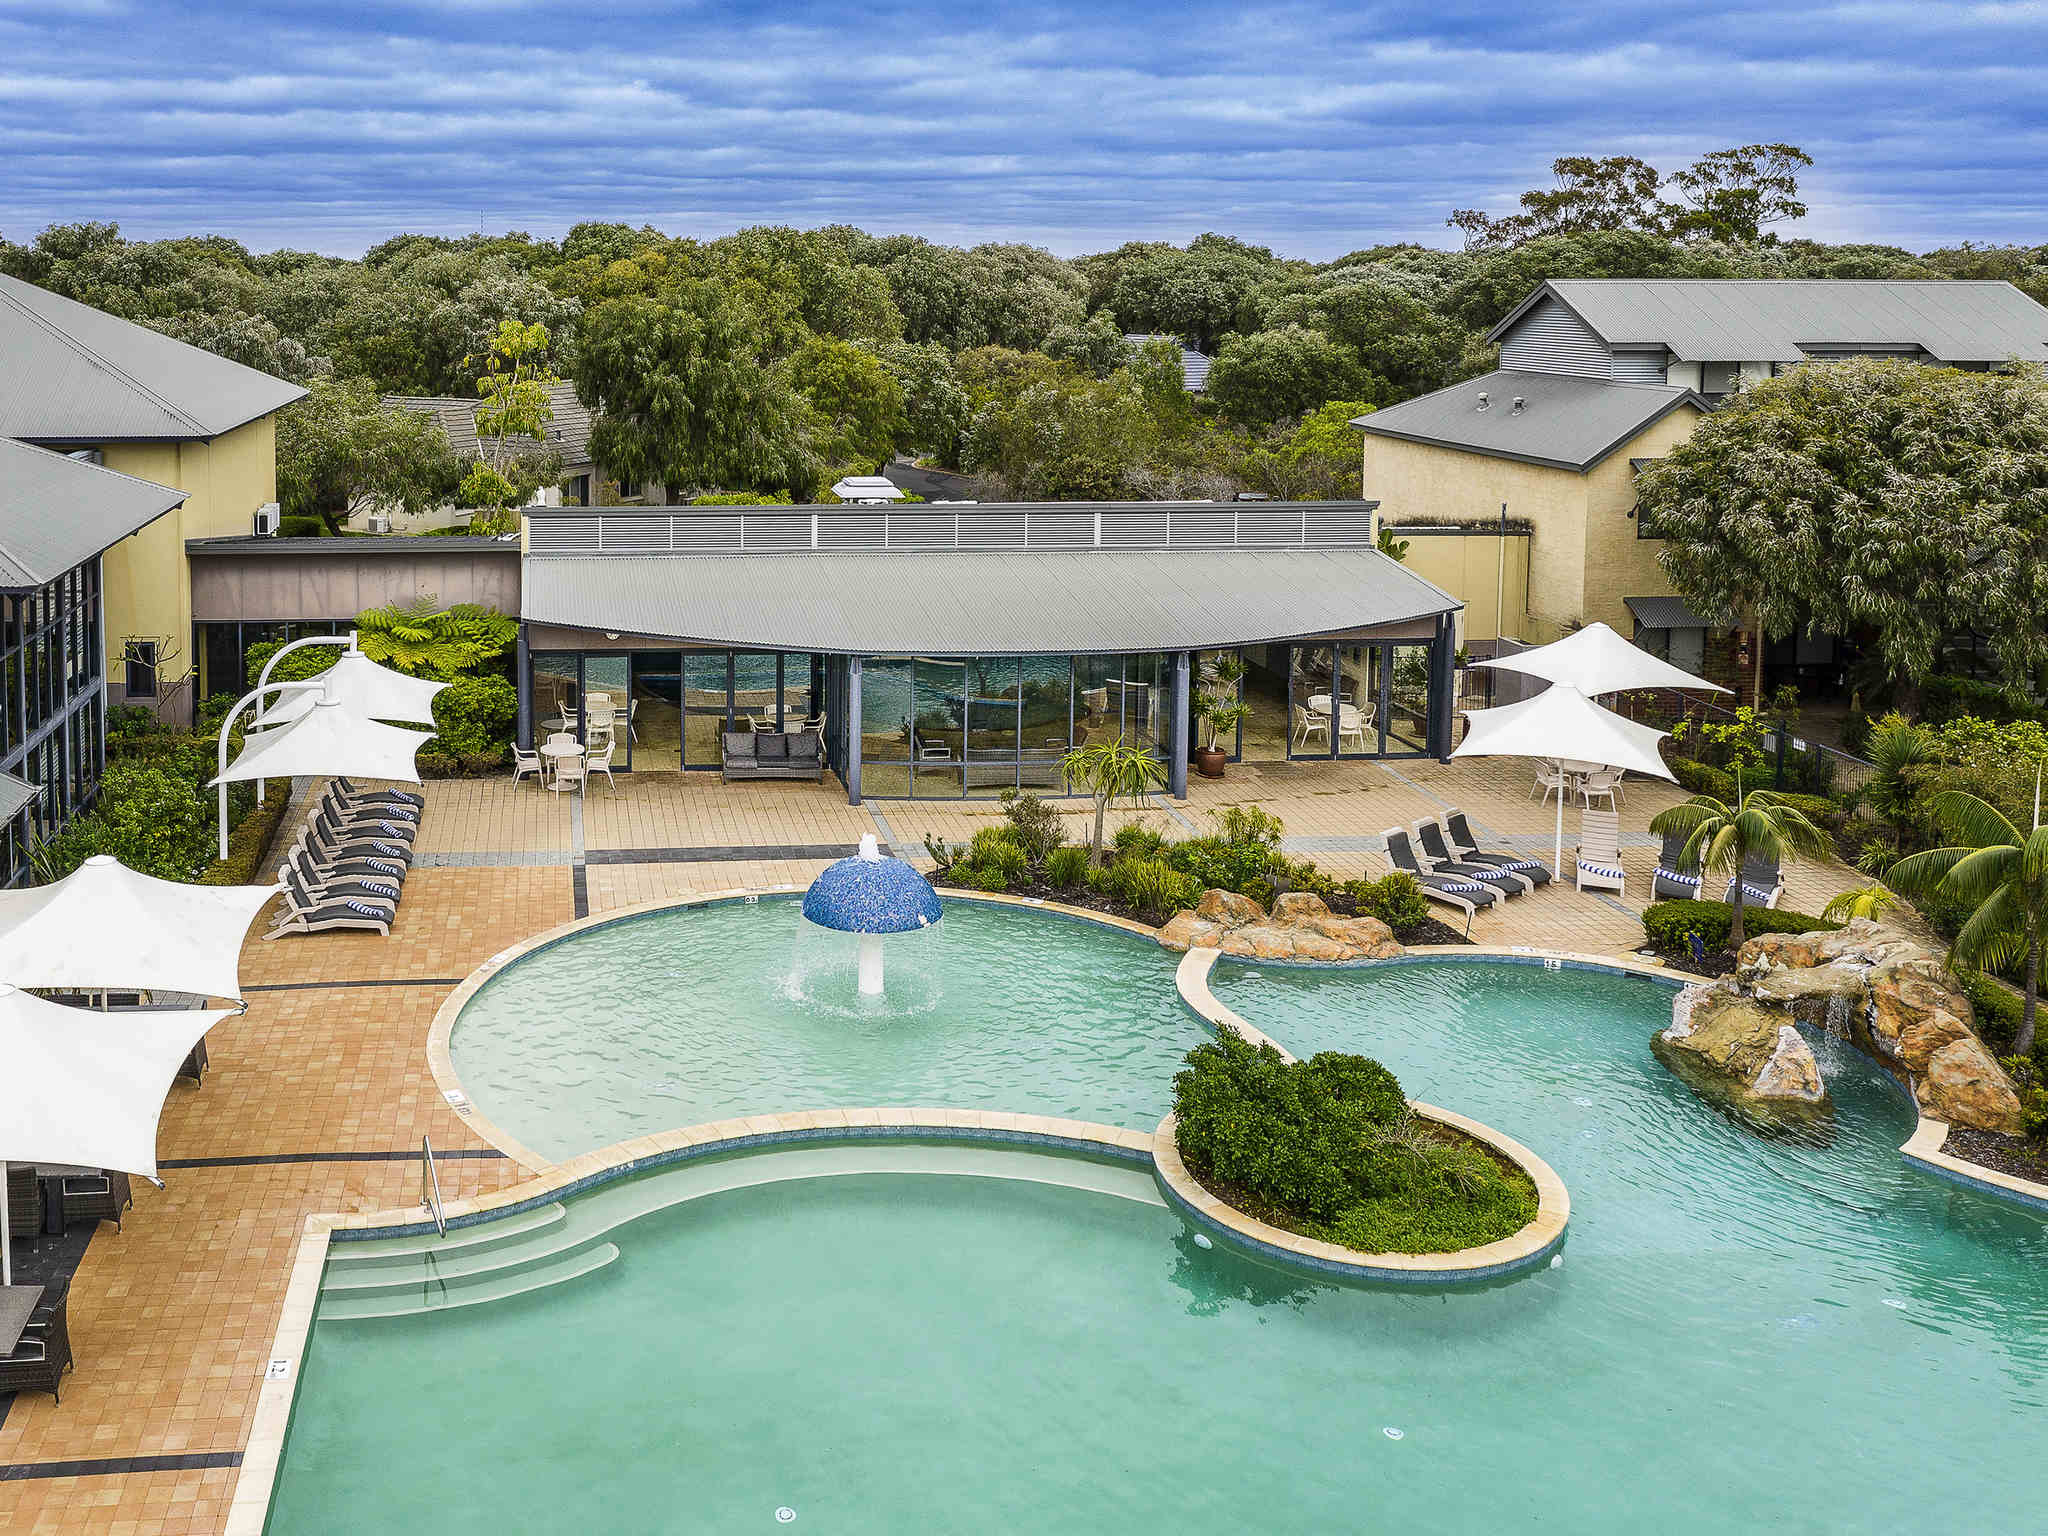 โรงแรม – The Sebel Busselton